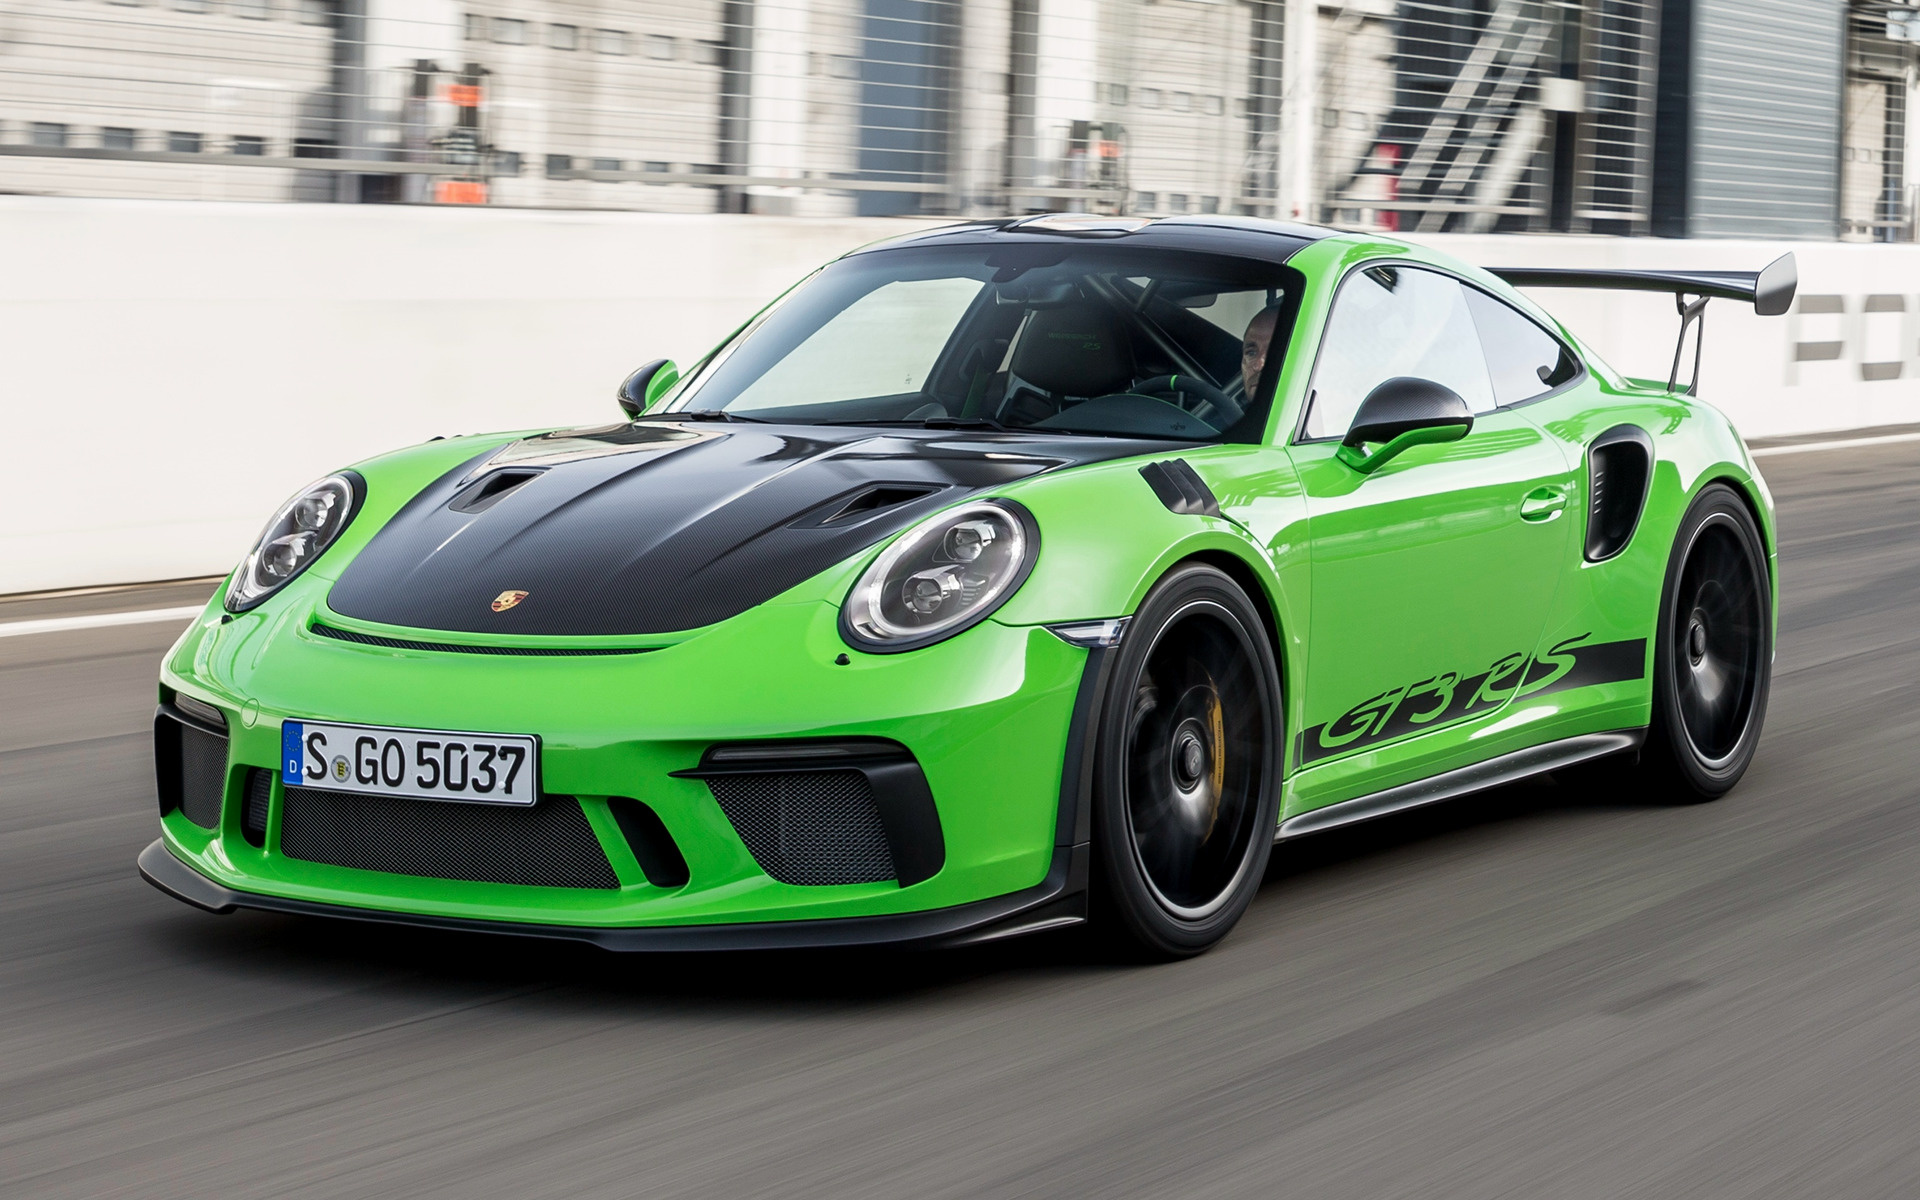 Porsche Gt3 Touring >> 2018 Porsche 911 GT3 RS Weissach Package - Wallpapers and ...